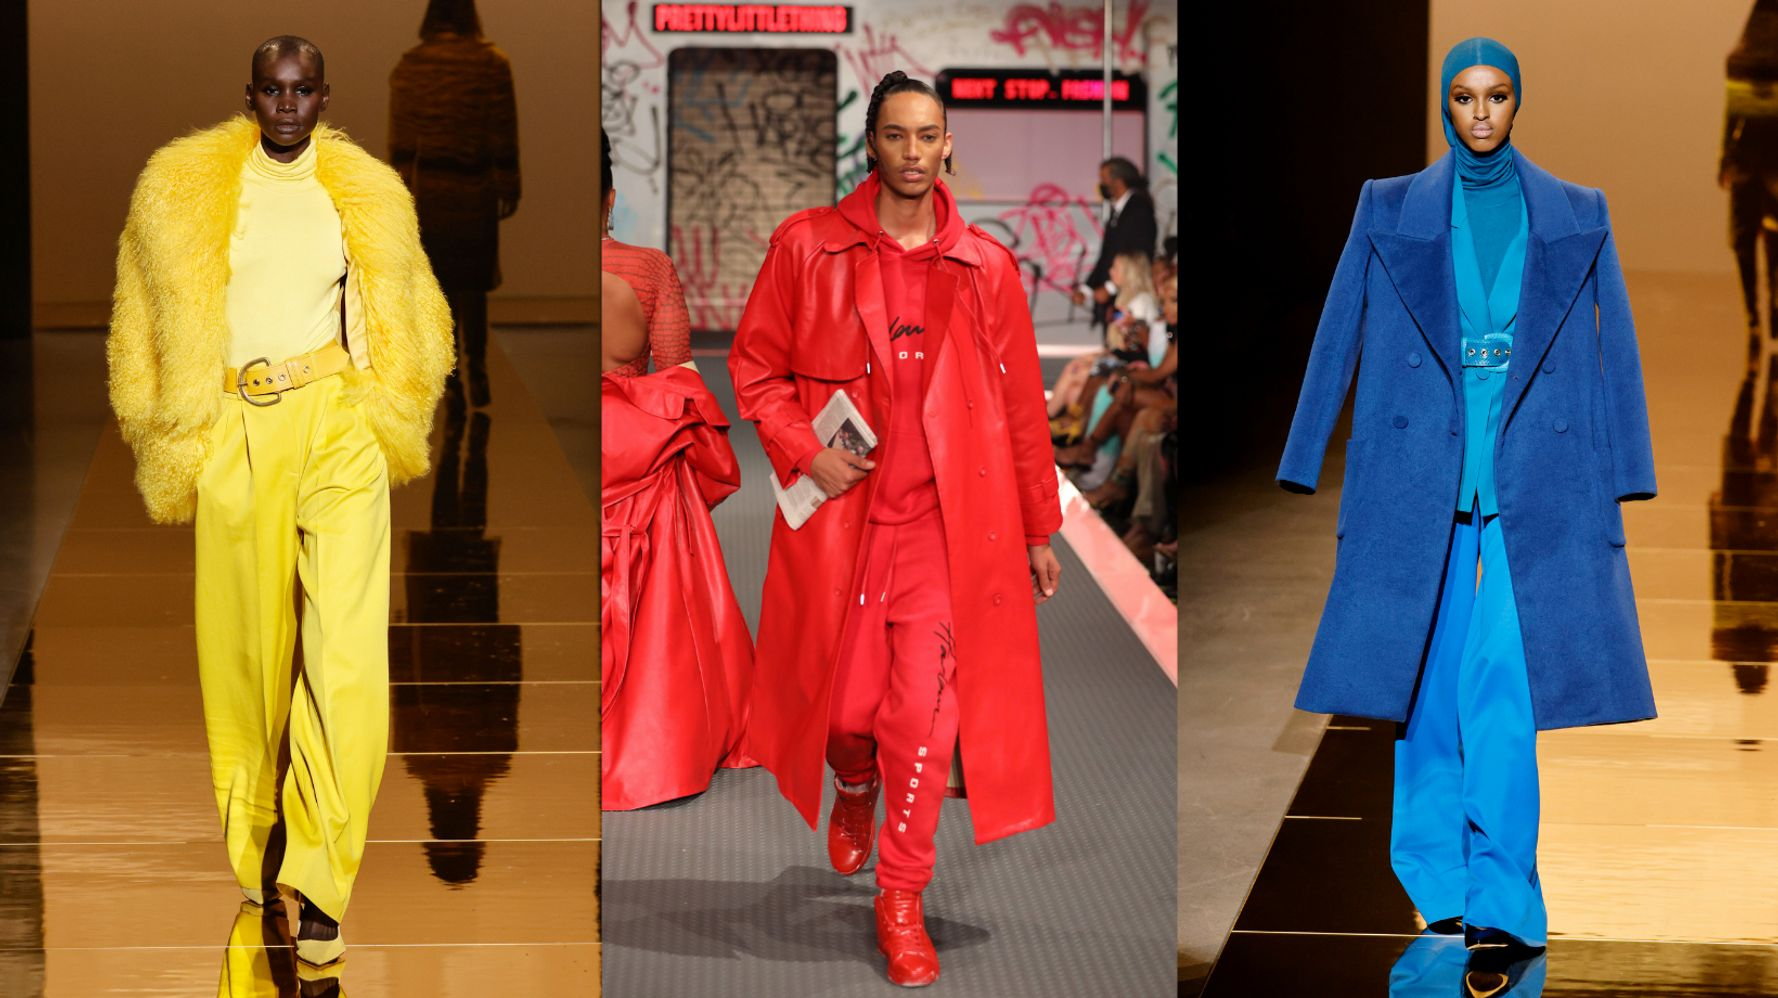 Primary Colors Are Back, But This Time For Adults